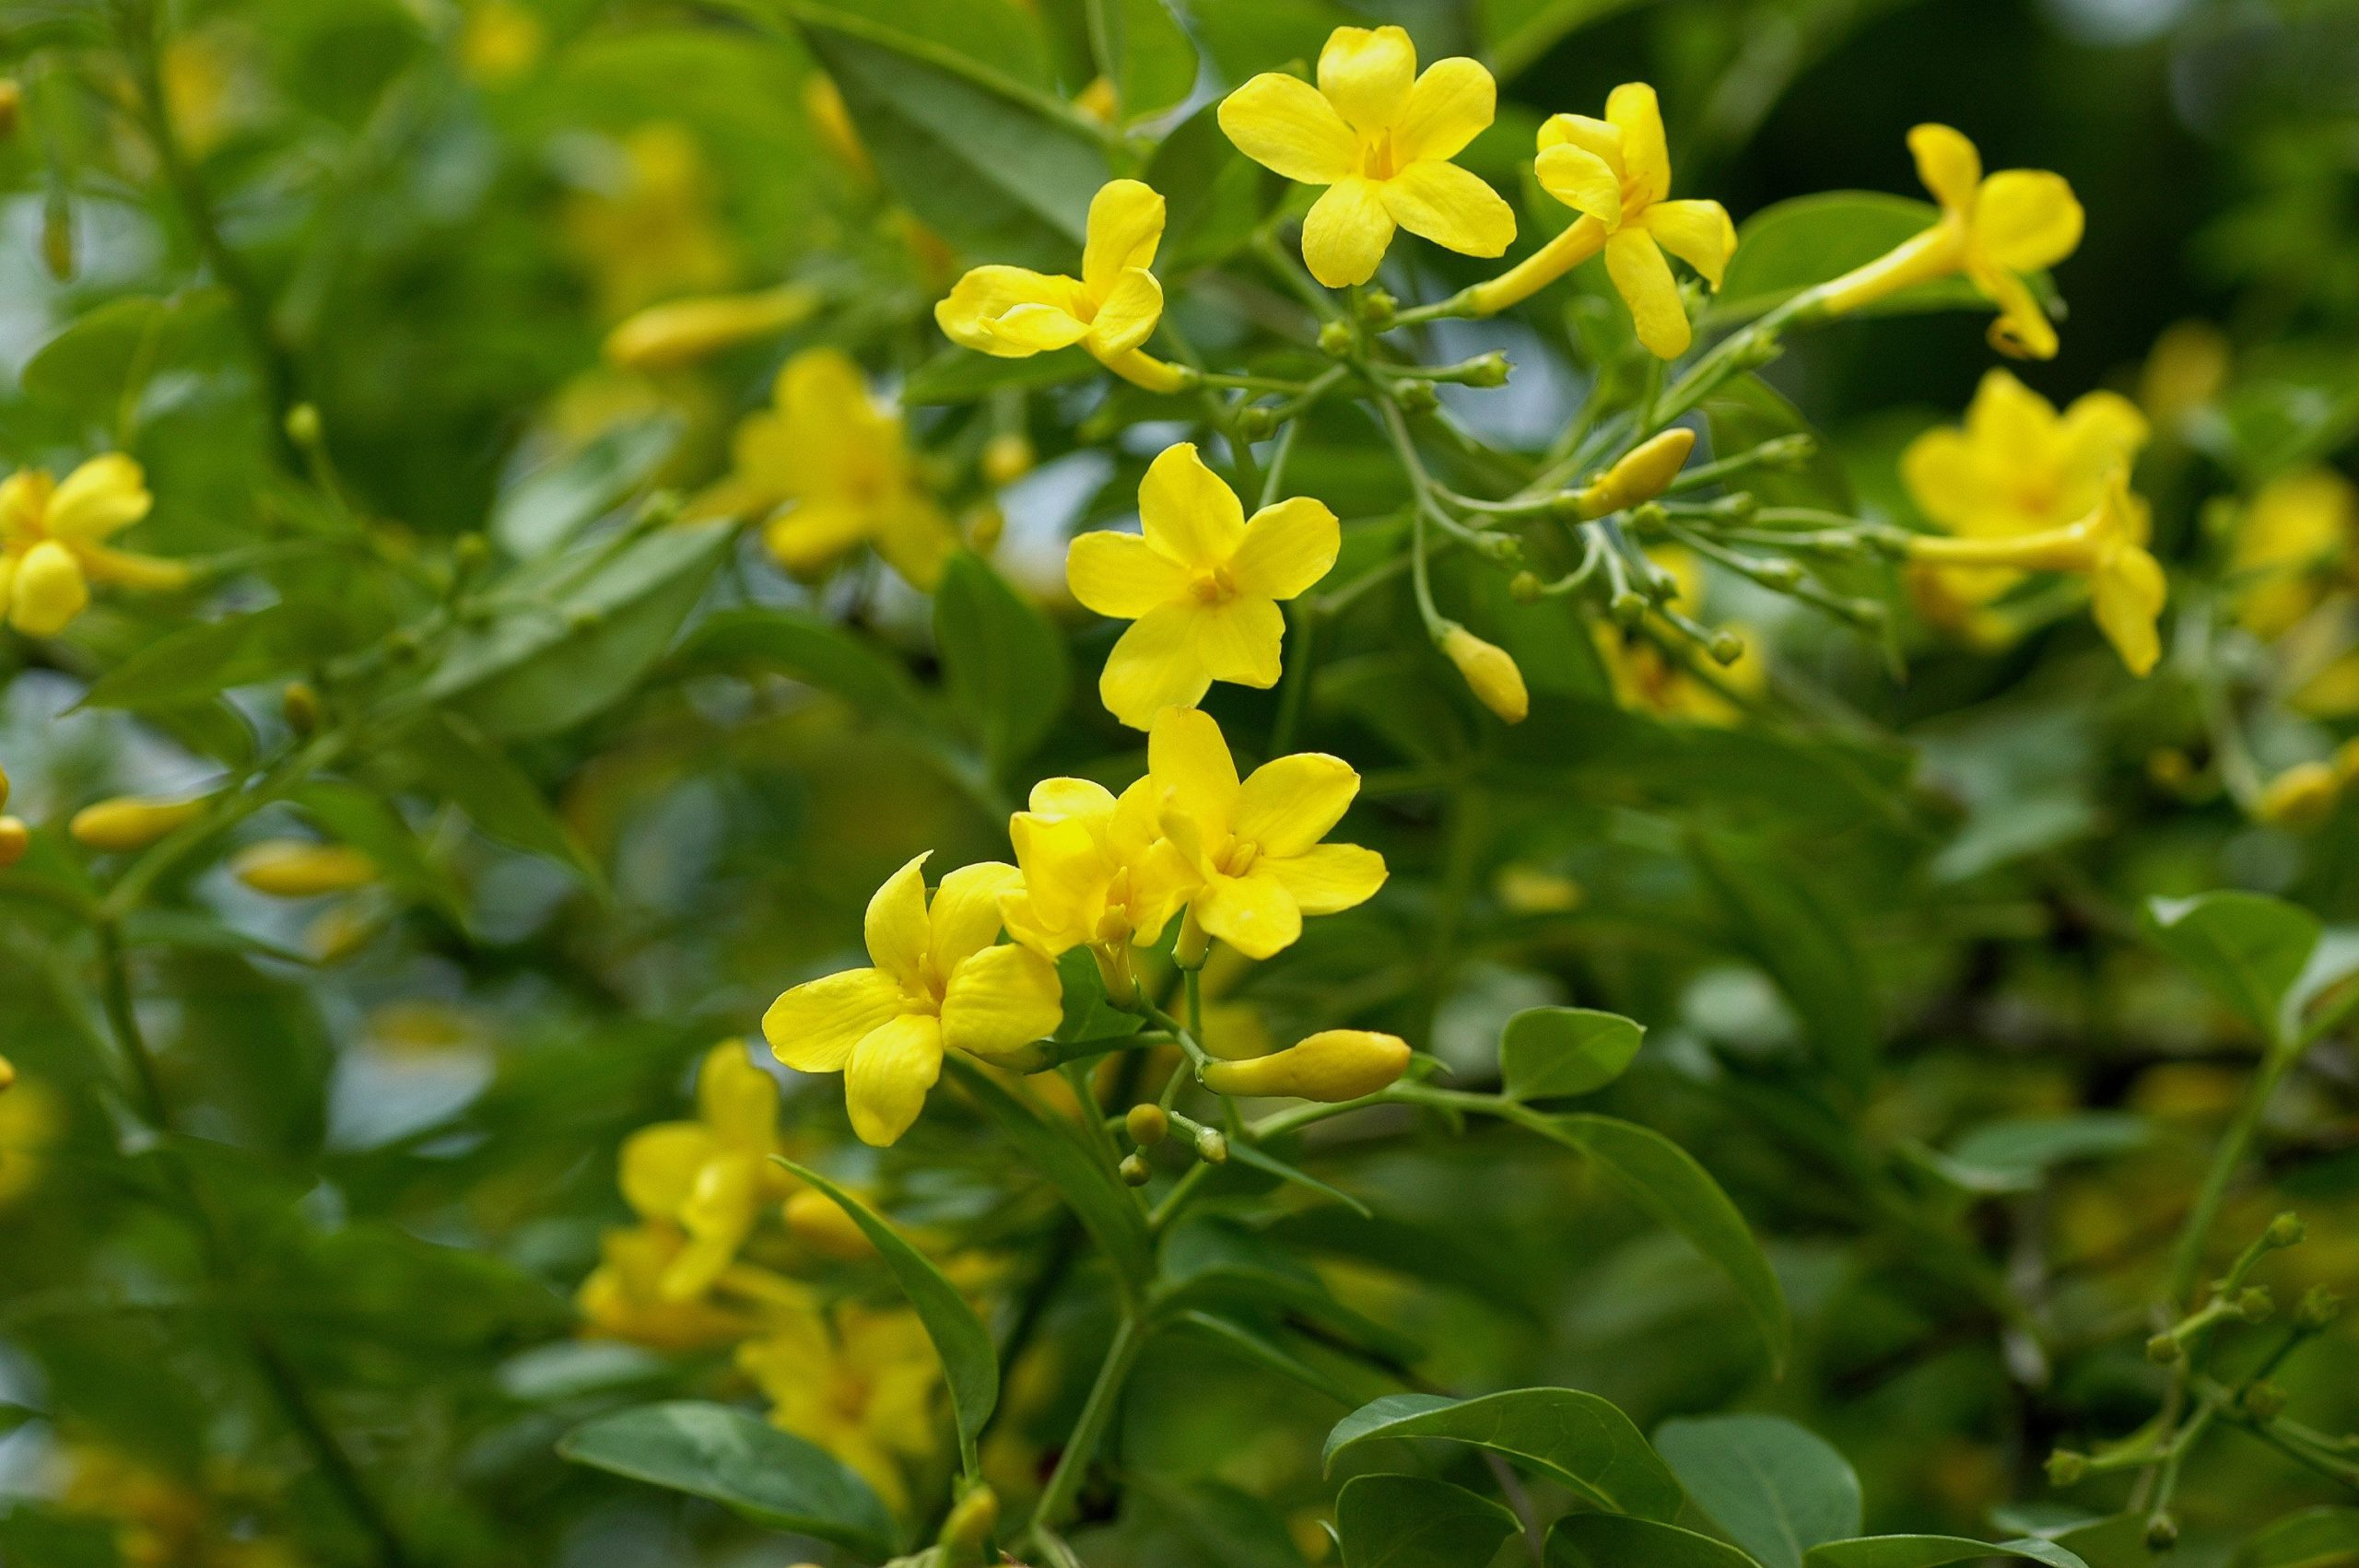 Jasminum humile 'Revolutum' is a semi-evergreen shrub producing clusters of bright yellow, fragrant flowers from late spring to early autumn. It can be grown on a wide range of soils, but it does need to be well-drained.